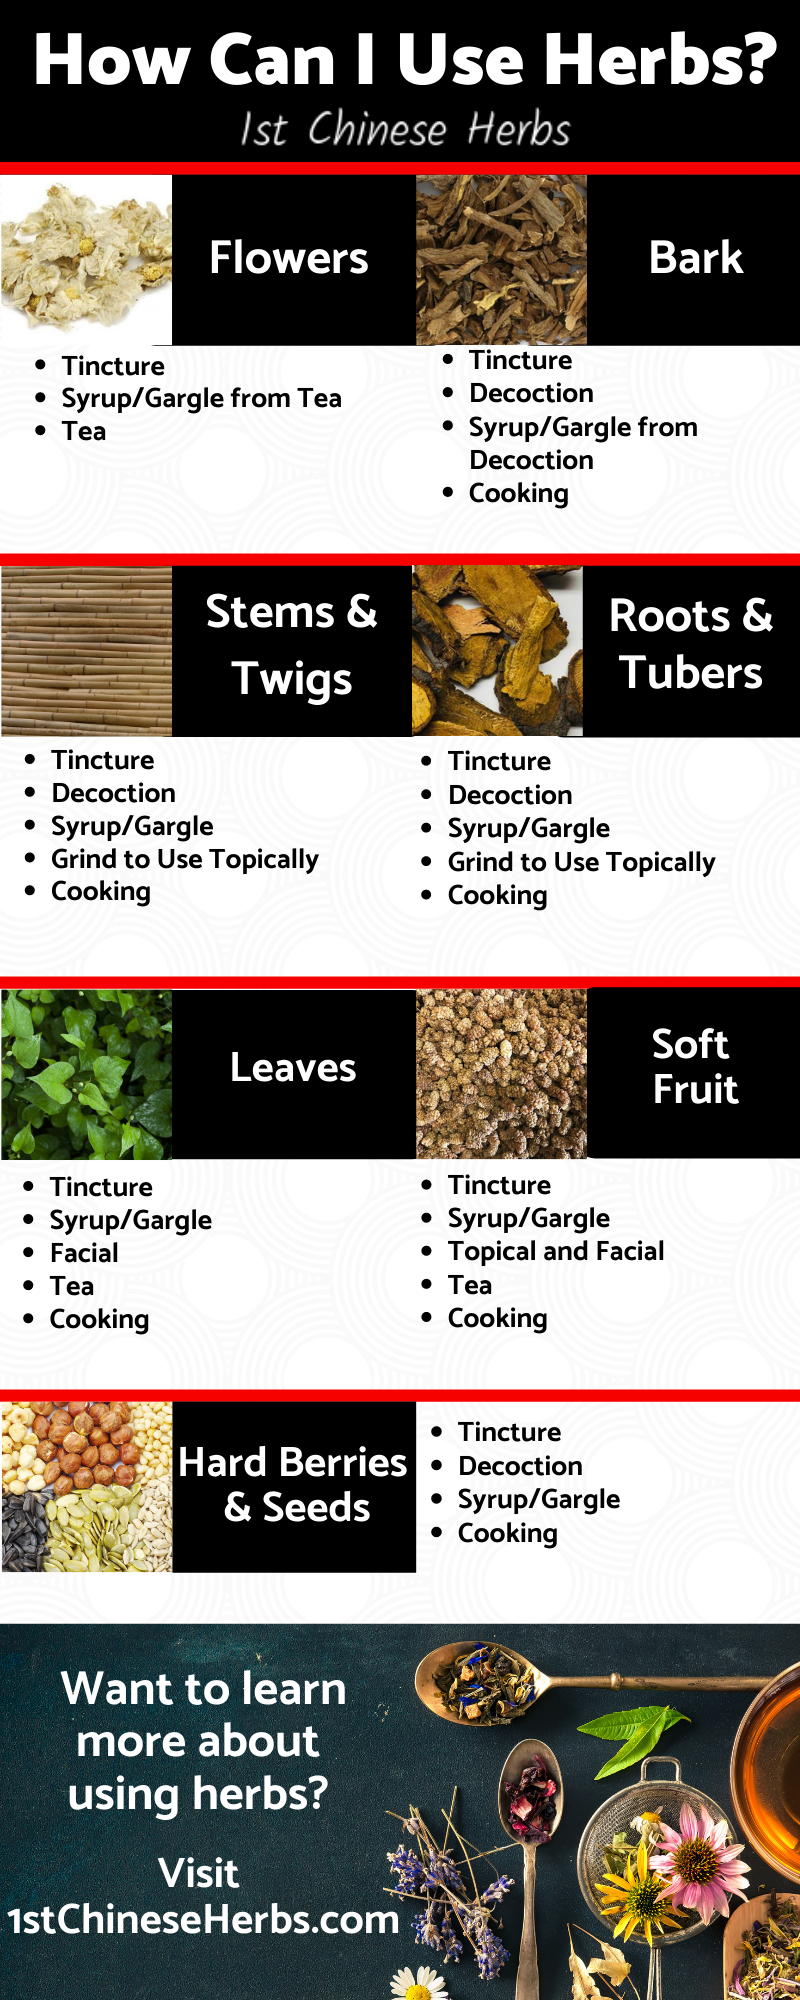 how to use herbs, how to use dried herbs, how to use seeds, how to use hard berries, how to use soft berries, how to use herbal leaves, how to use bark for herbs, how to use stems for herbs, how to use roots for herbs how to use tubers for herbs, how to use herbal rhizomes